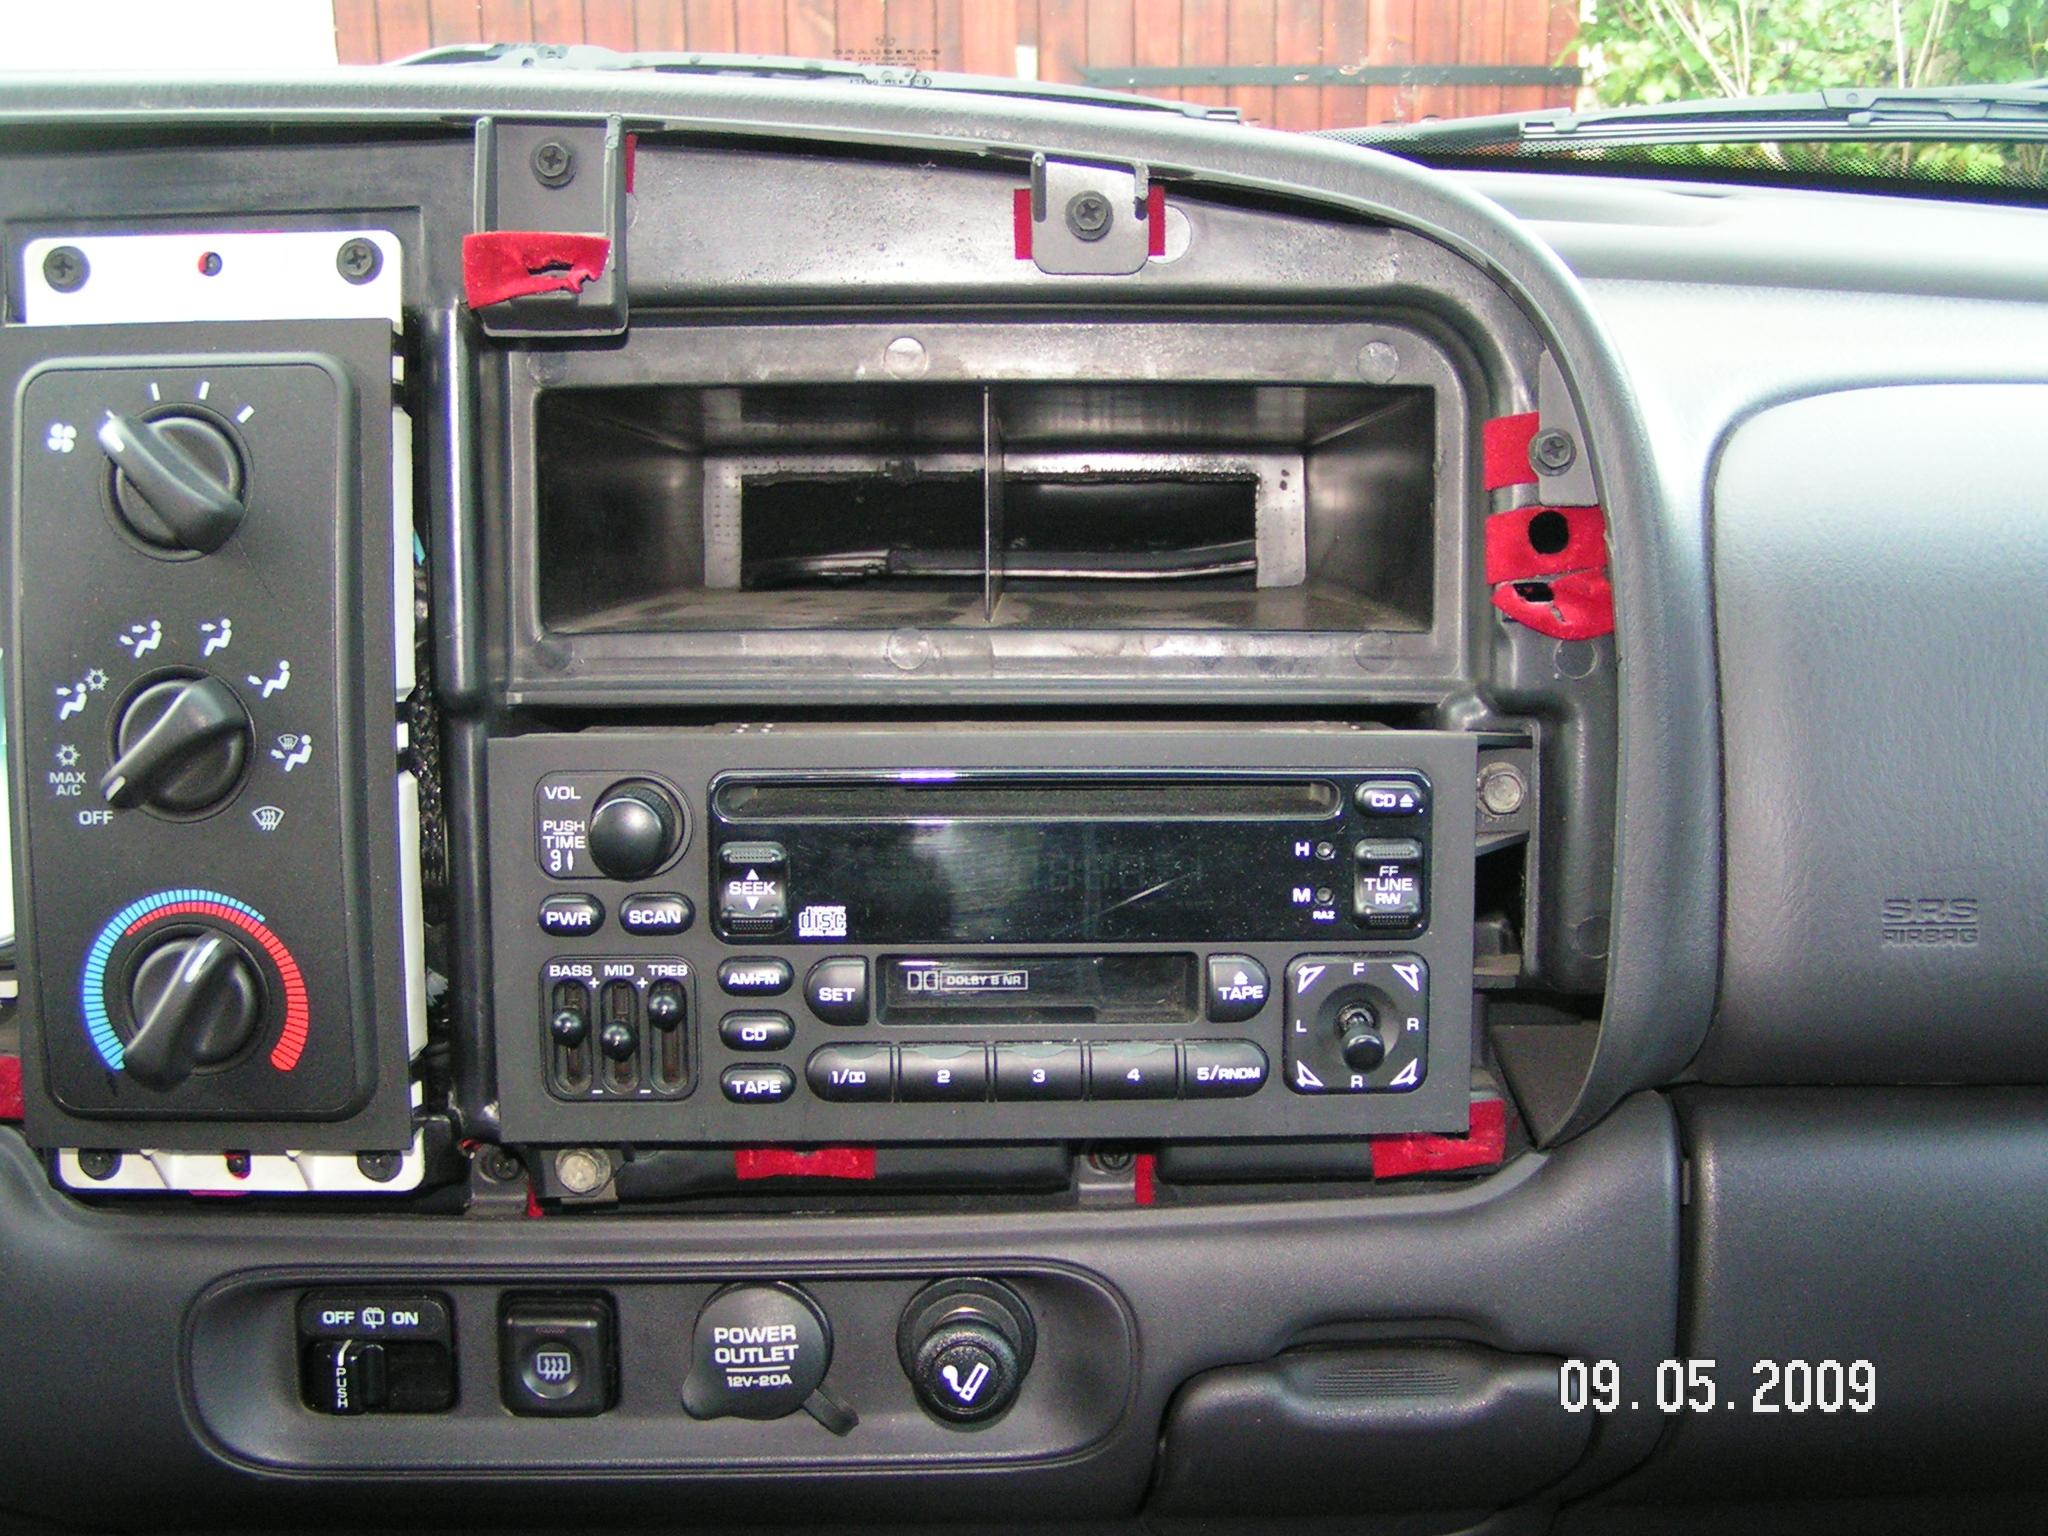 radio11 radio replacement 2000 dodge durango stereo wiring diagram at gsmportal.co